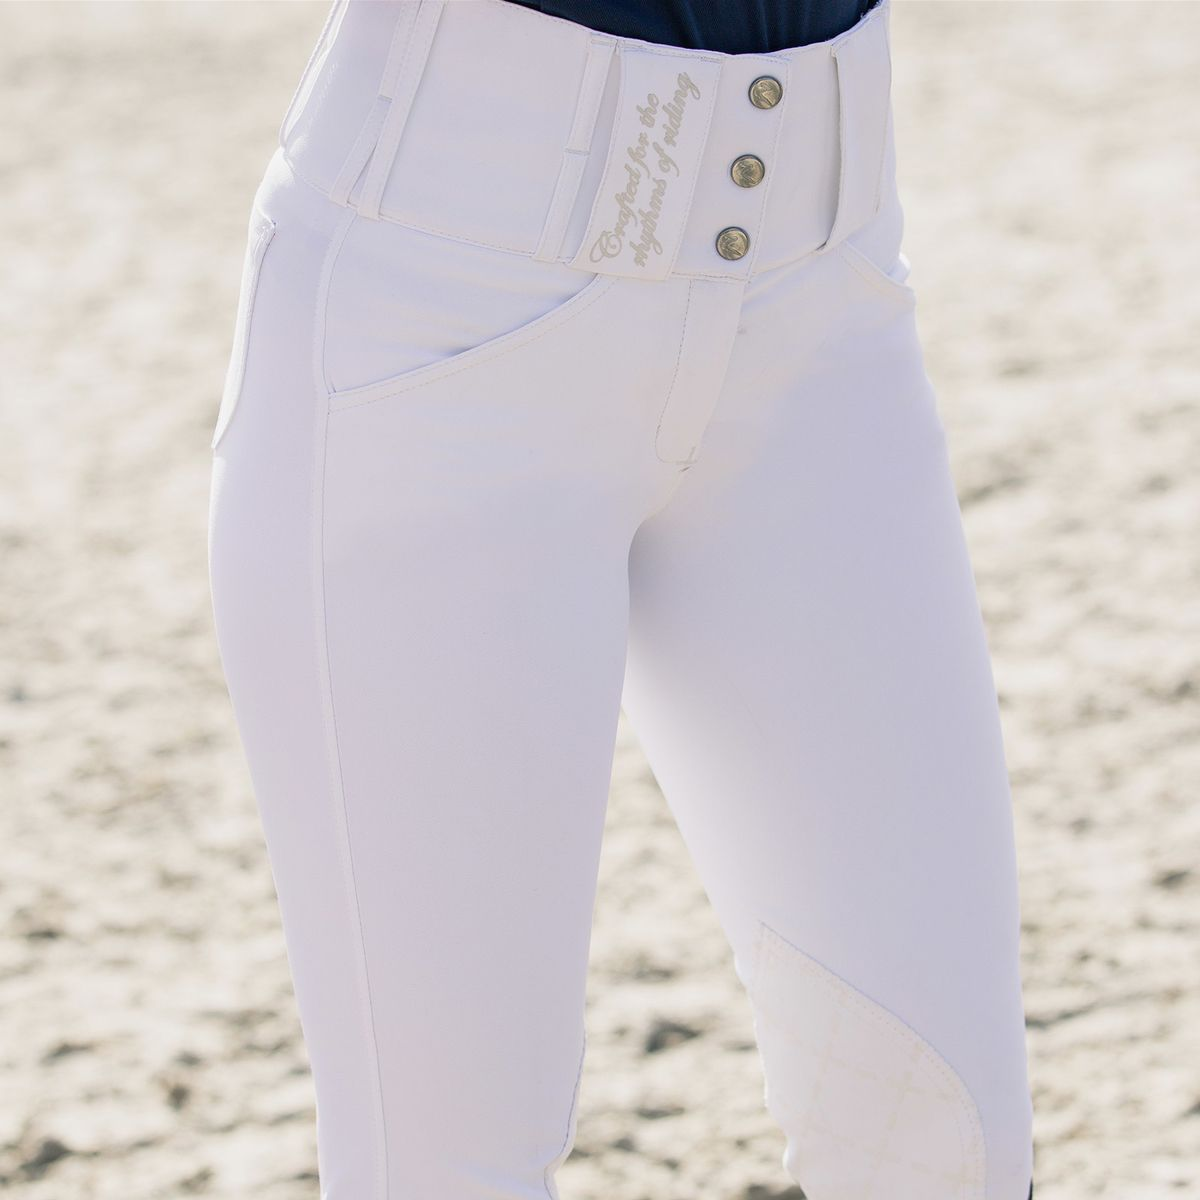 Horze-Desiree-Women-039-s-Knee-Patch-Riding-Breeches-with-High-Waist-and-Bi-Stretch thumbnail 31